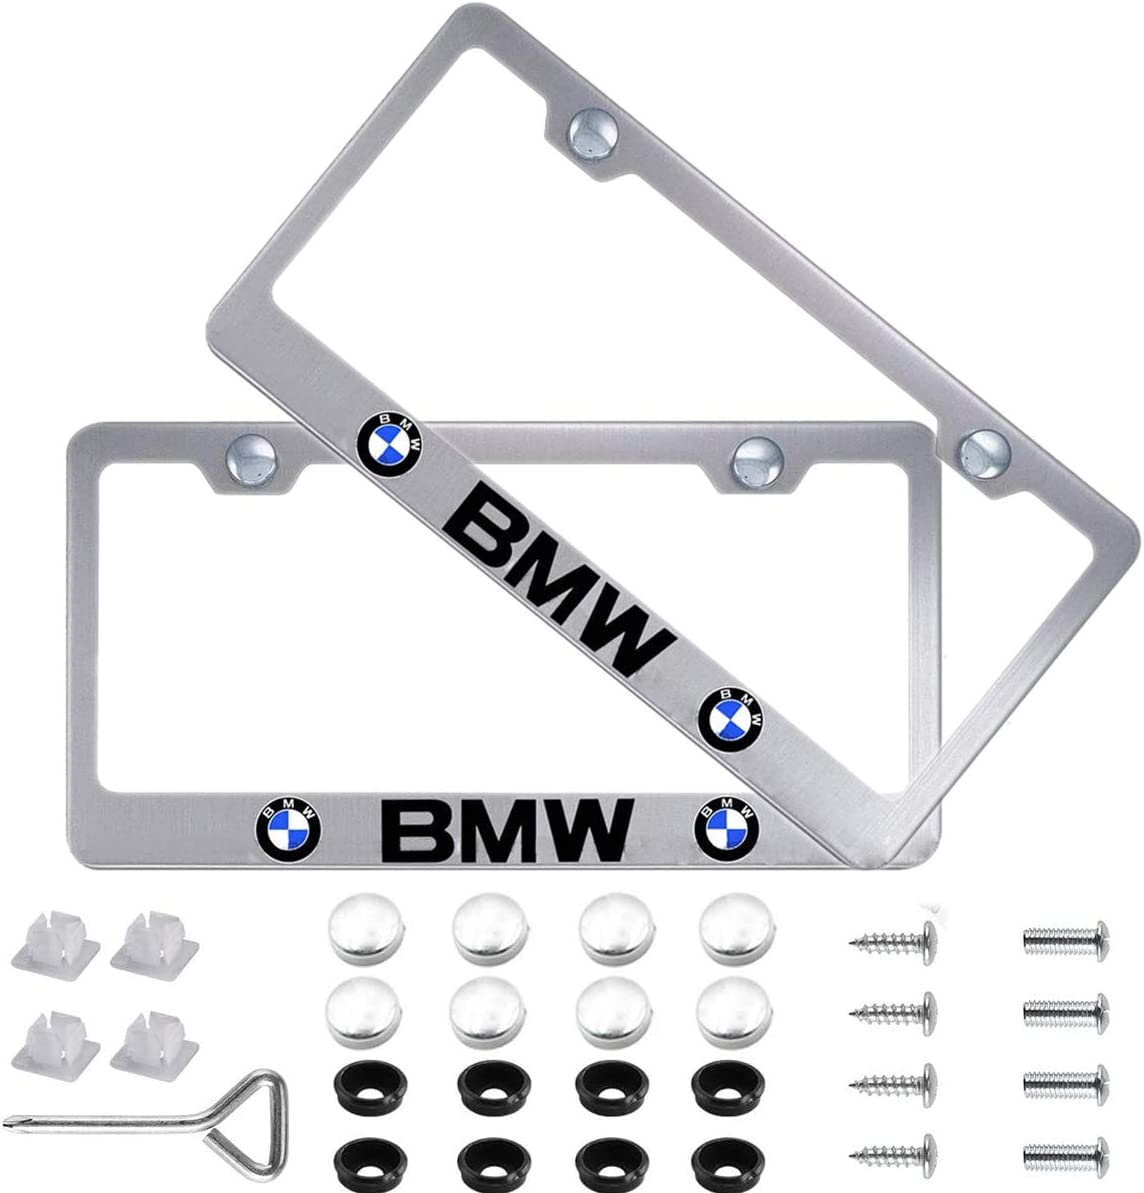 Newest Silver Car Licenses Plate Covers Holders for US CA Vehicles Fit for BMW Masney 2Pcs Car Logo License Plate Frame with Sliver Screw Caps